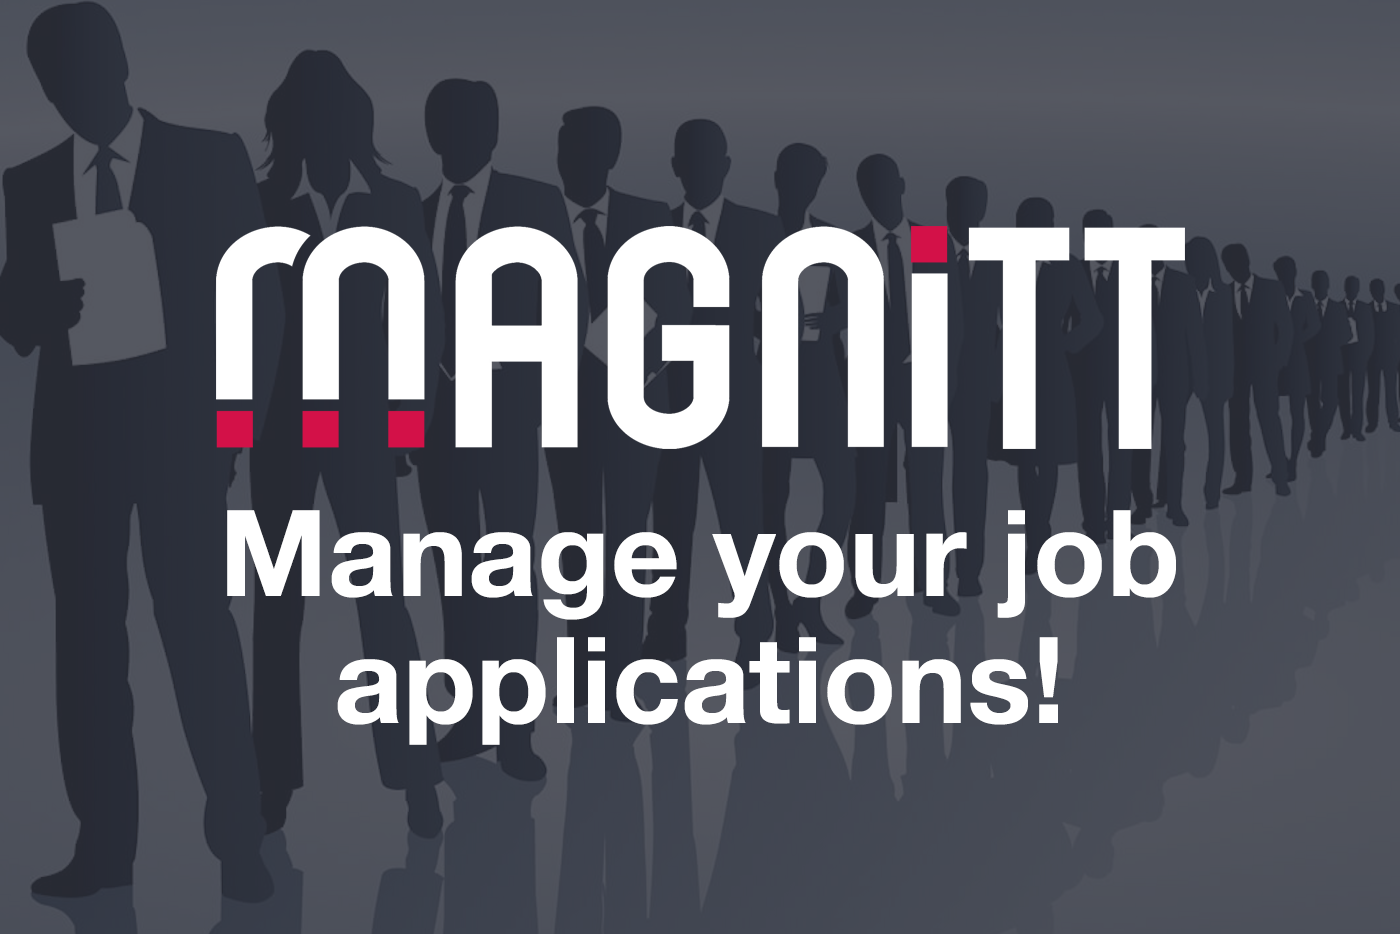 Are you recruiting? We just made it easier to manage!